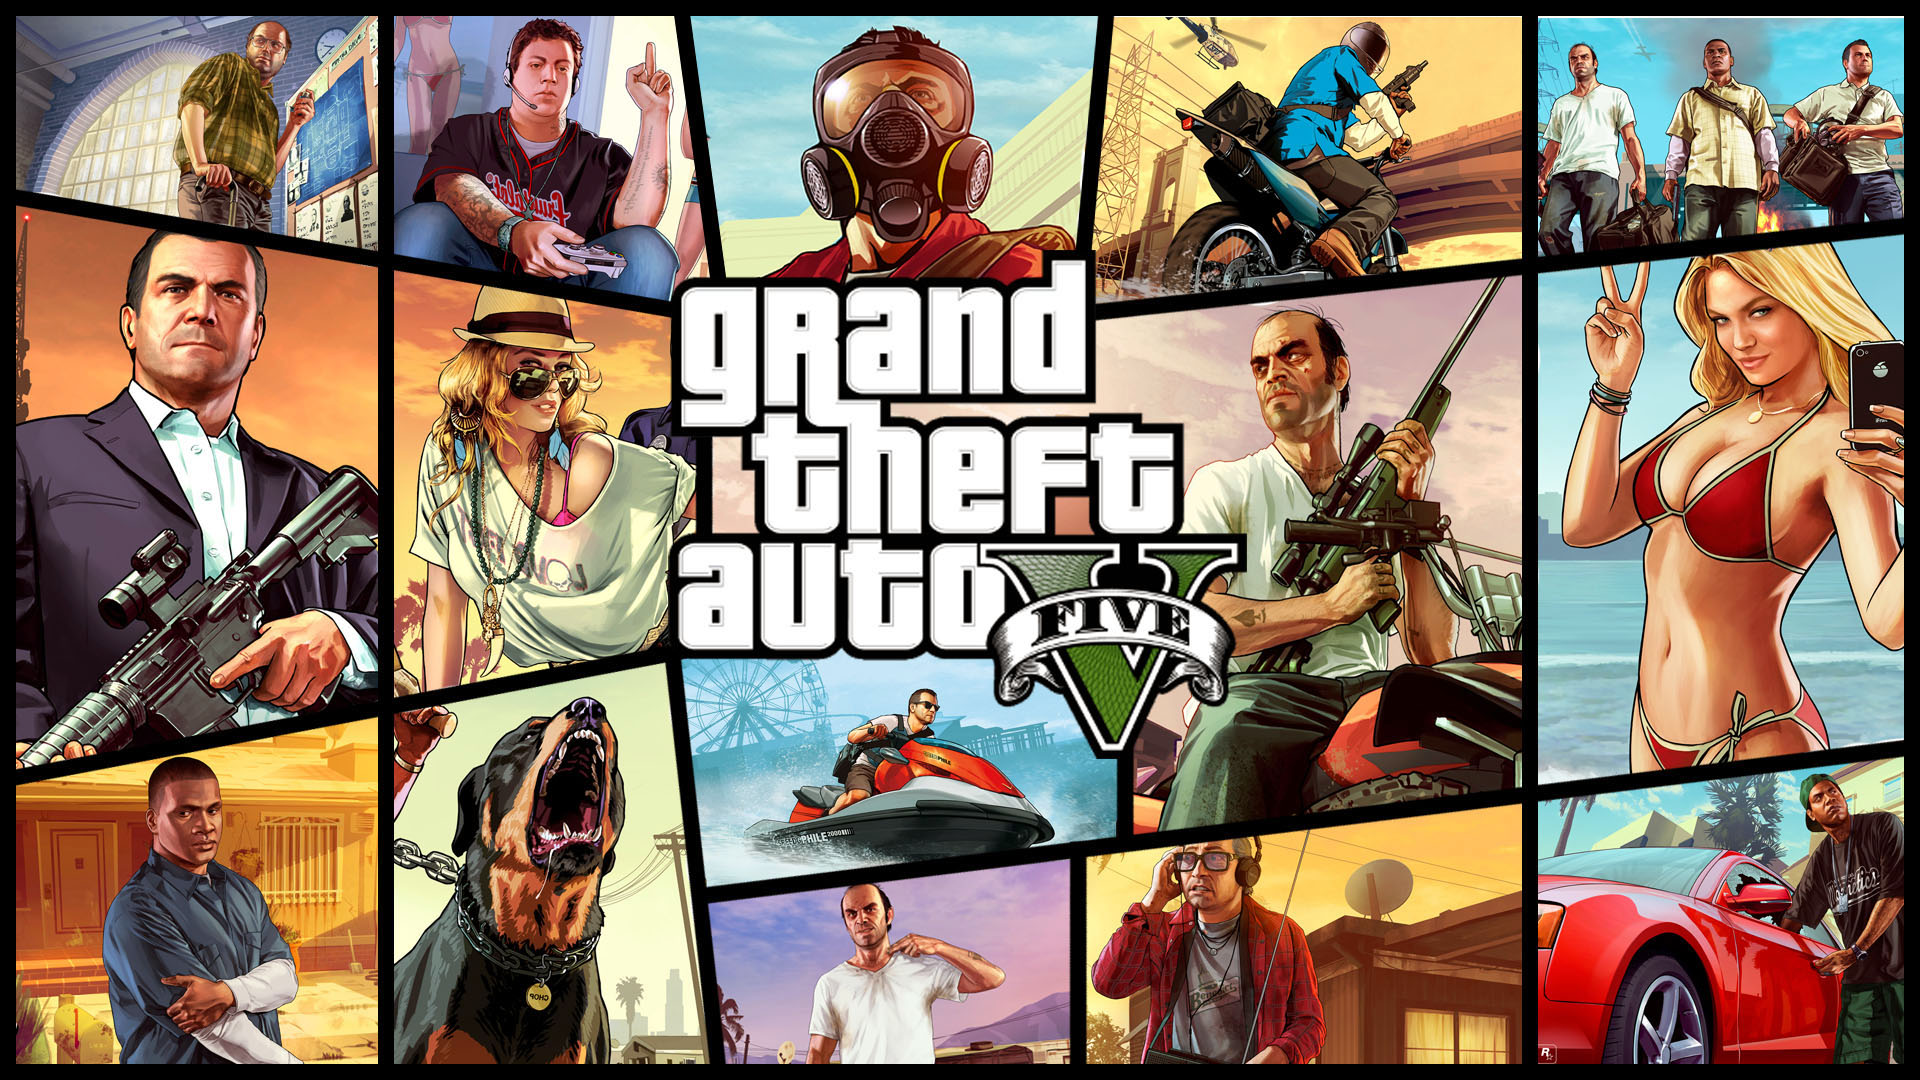 Download grand theft auto 5 gta 5 for ipad untested gta 5 hack for iphone